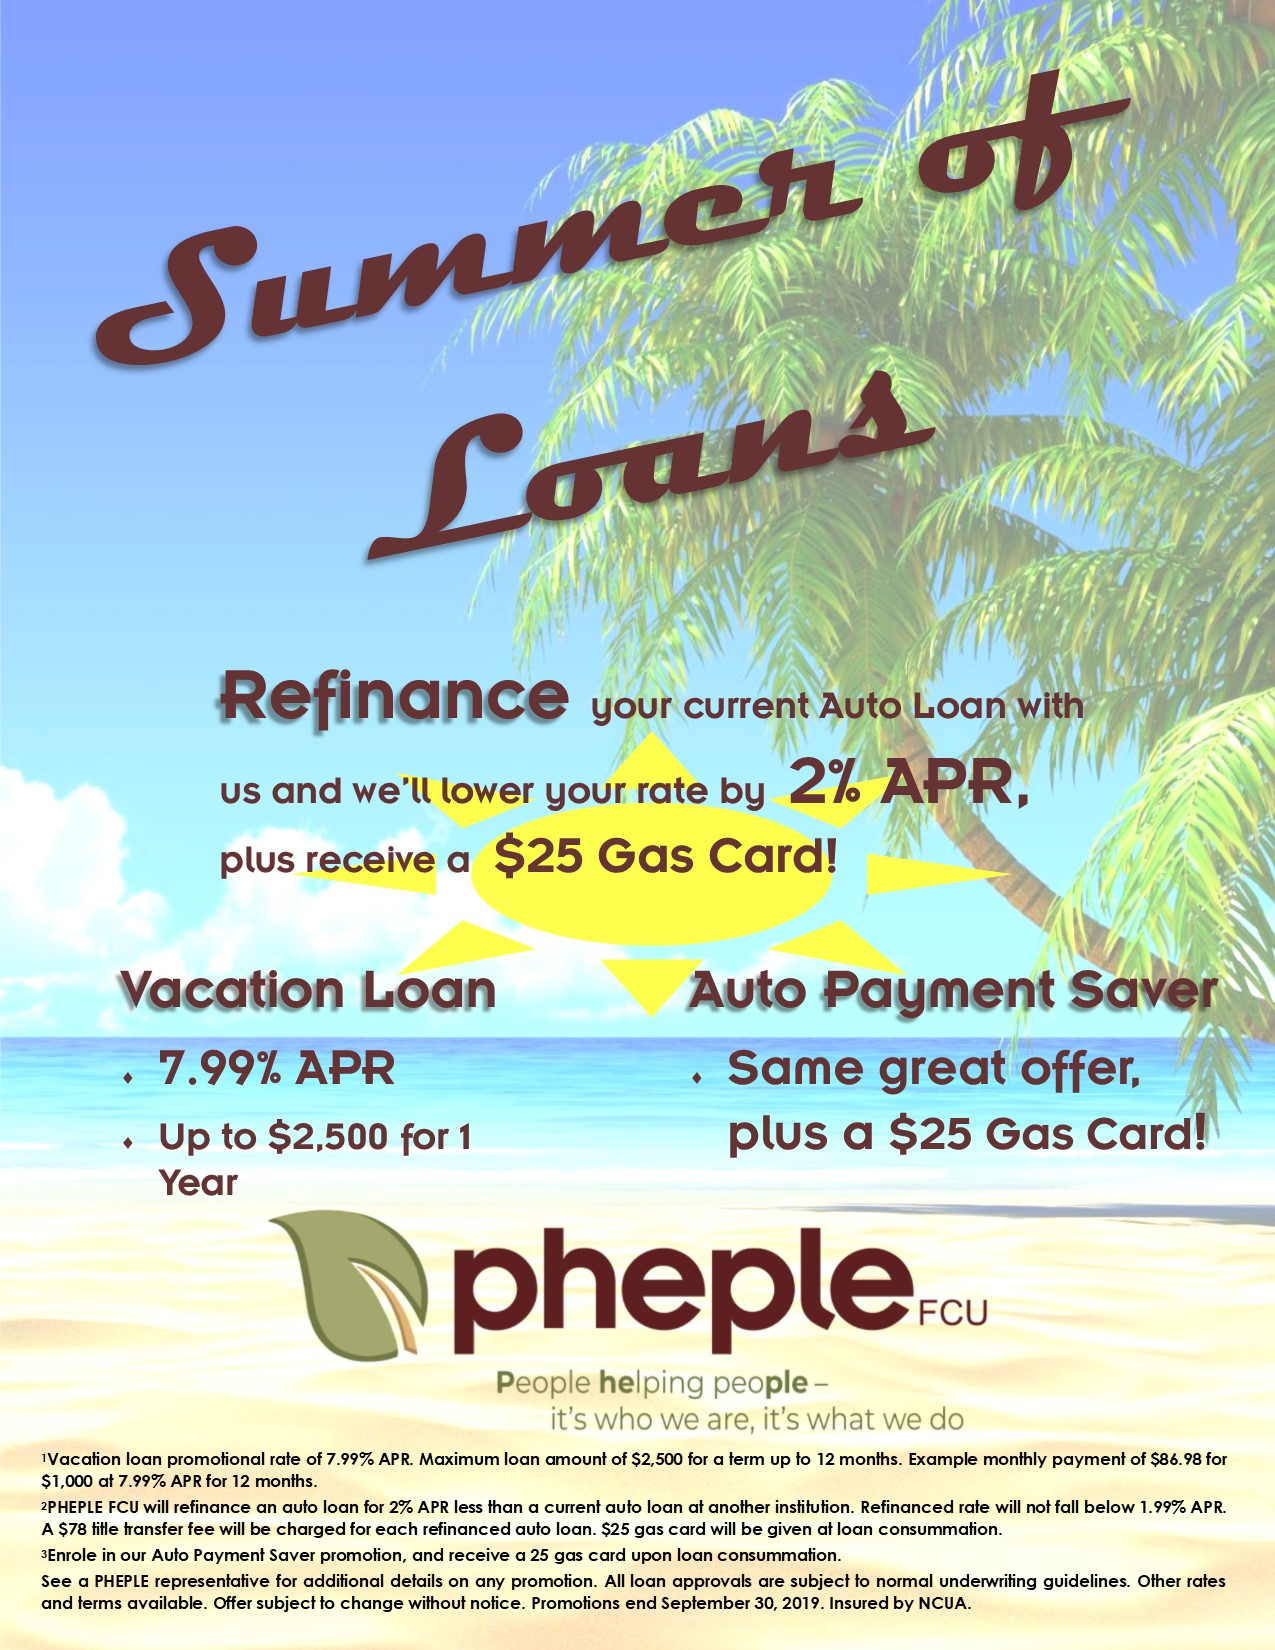 Refinance-your-current-Auto-Loan-with-us-and-we'll-lower-your-rate-by-2%-APR-plus-receive-a-25-Gas-Card -Auto-Payment-Saver-Same-great-offer-plus-a-25-Gas-Card-Vacation-Loan-7.99%-APR-Up-to-2,500-for-1-Year-Vacation-loan-promotional-rate-of-7.99-APR-Maximum-loan-amount-of-2,500-for-a-term-up-to-12-months-Example-monthly-payment-of-86.98-for-1,000-at-7.99-APR-for-12-months-2PHEPLE-FCU-will-refinance-an-auto-loan-for-2-APR-less-than-a-current-auto-loan-at-another-institution-Refinanced-rate-will-not-fall-below-1.99-APR-A-78-title-transfer-fee-will-be-charged for-each-refinanced-auto-loan-25-gas-card-will-be-given-at-loan-consummation-3Enrole-in-our-Auto-payment-Saver-promotion-and-receive-a-25-gas-card-upon-loan-consummation-See-a-PHEPLE-representative-for-additional-details-on-any-promotion-All-loan-approvals-are-subject-to-normal-underwriting-guidelines-Other-rates-and-terms-available-Offer-subject-to-change-without-notice-Promotions-end-September-30-2019-Insured-by-NCUA.